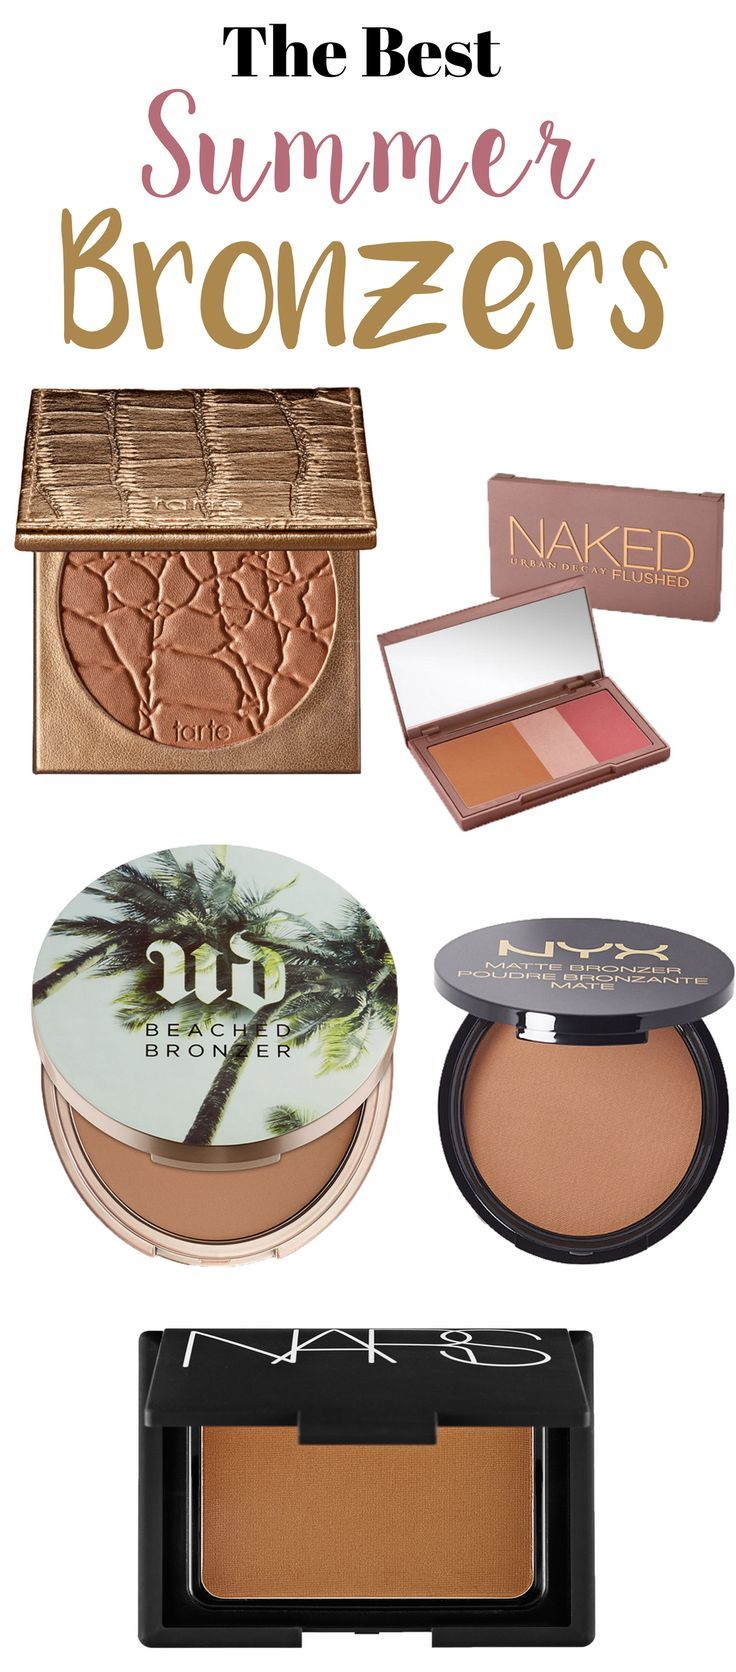 The Best Bronzers you need for this summer season!